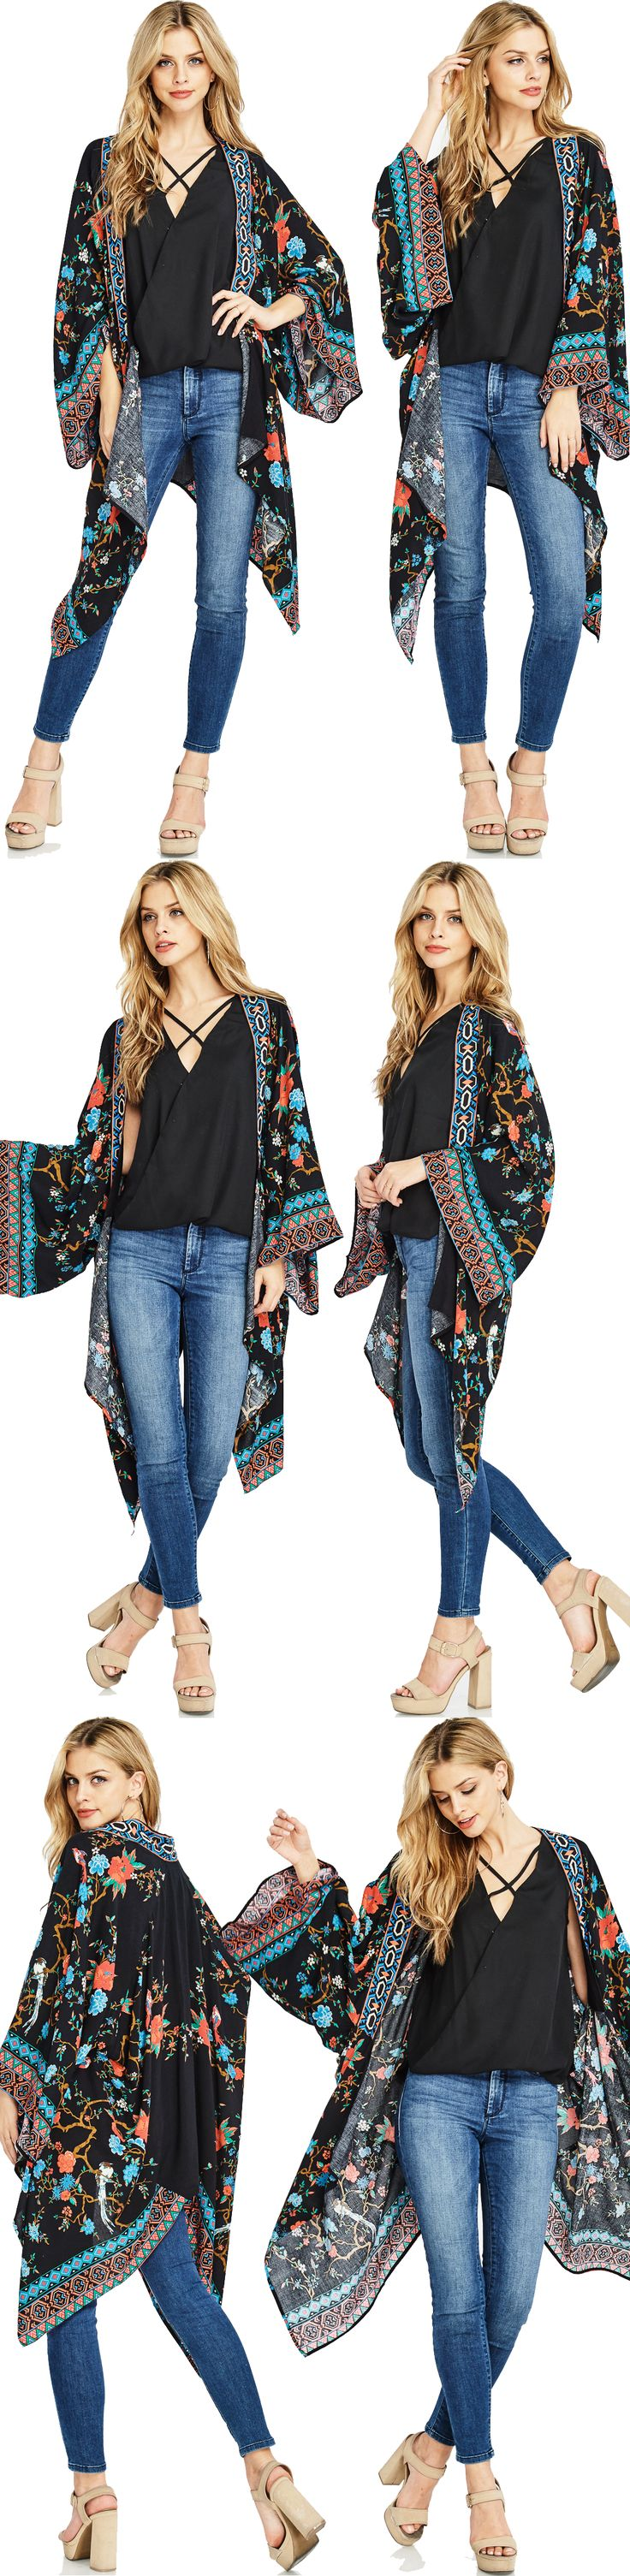 #fallcardigans #falloutfits #longcardigans #hoodedcardigans #womenscardigans #knitcardigans #oversizecardigans #bohochicstyle #bohemian #bohemianstyle #ootn #ootdshare #ootd #womenfashion #style #womensfashion #womensclothing #shopping #shoppingonline #casualstyle #teenstyle  #shopping #womenswear #style #styleinspiration #styleoftheday #trending #trendingnow #casual #casualstyle #casualoutfits